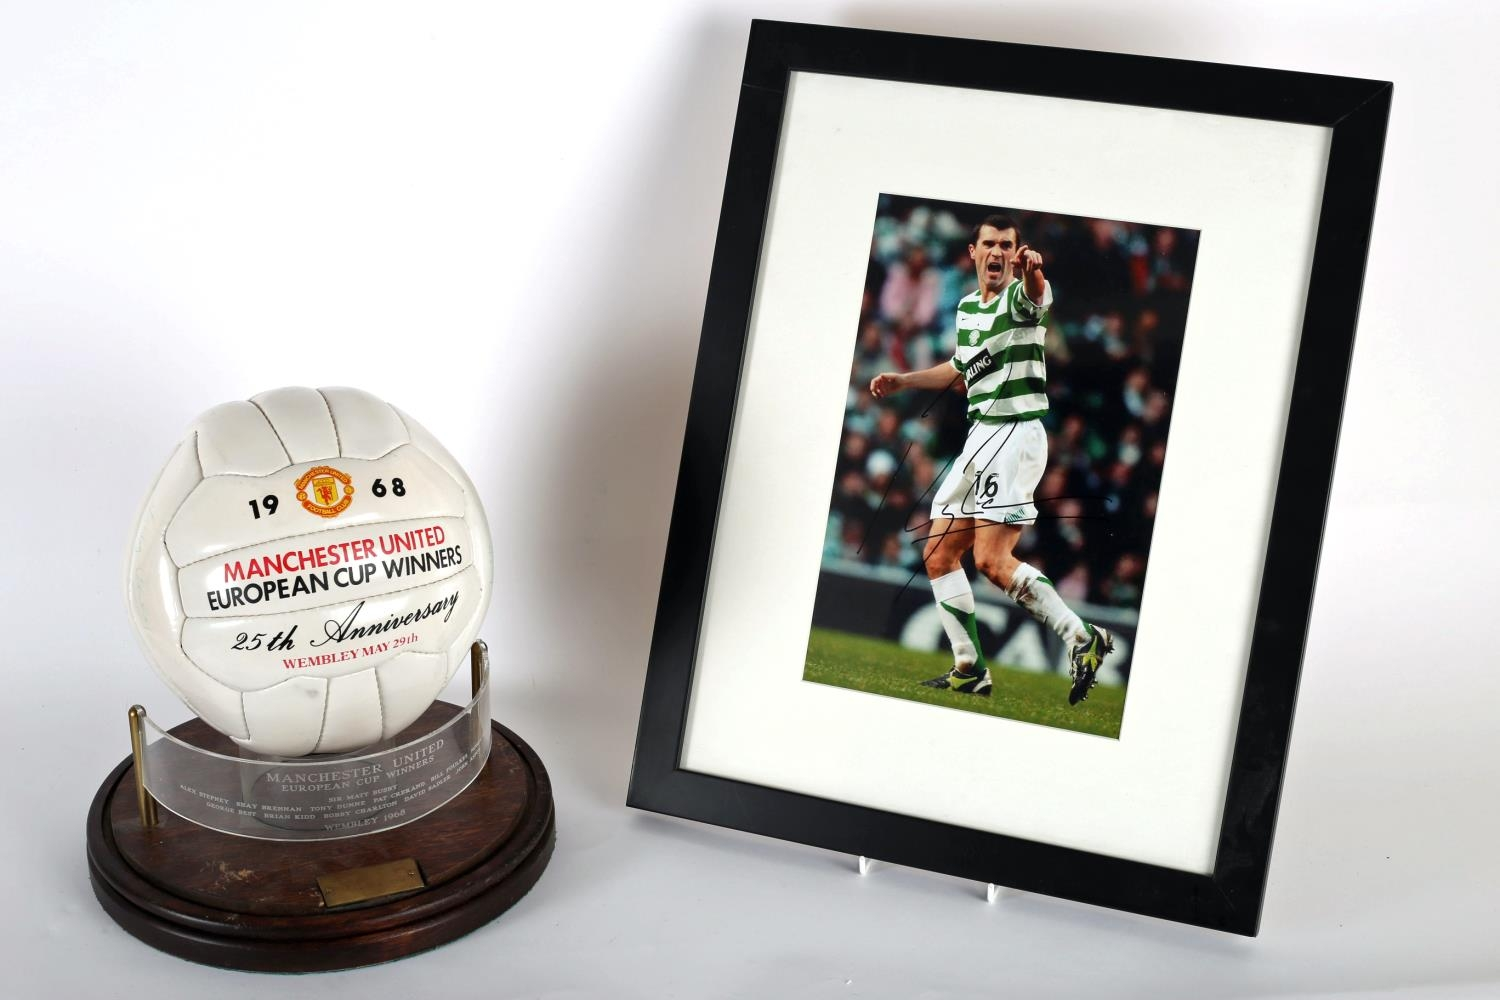 Football 2006 a colour photograph of Roy Keane, in Celtic strip, signed by Keane; together with a - Image 5 of 5